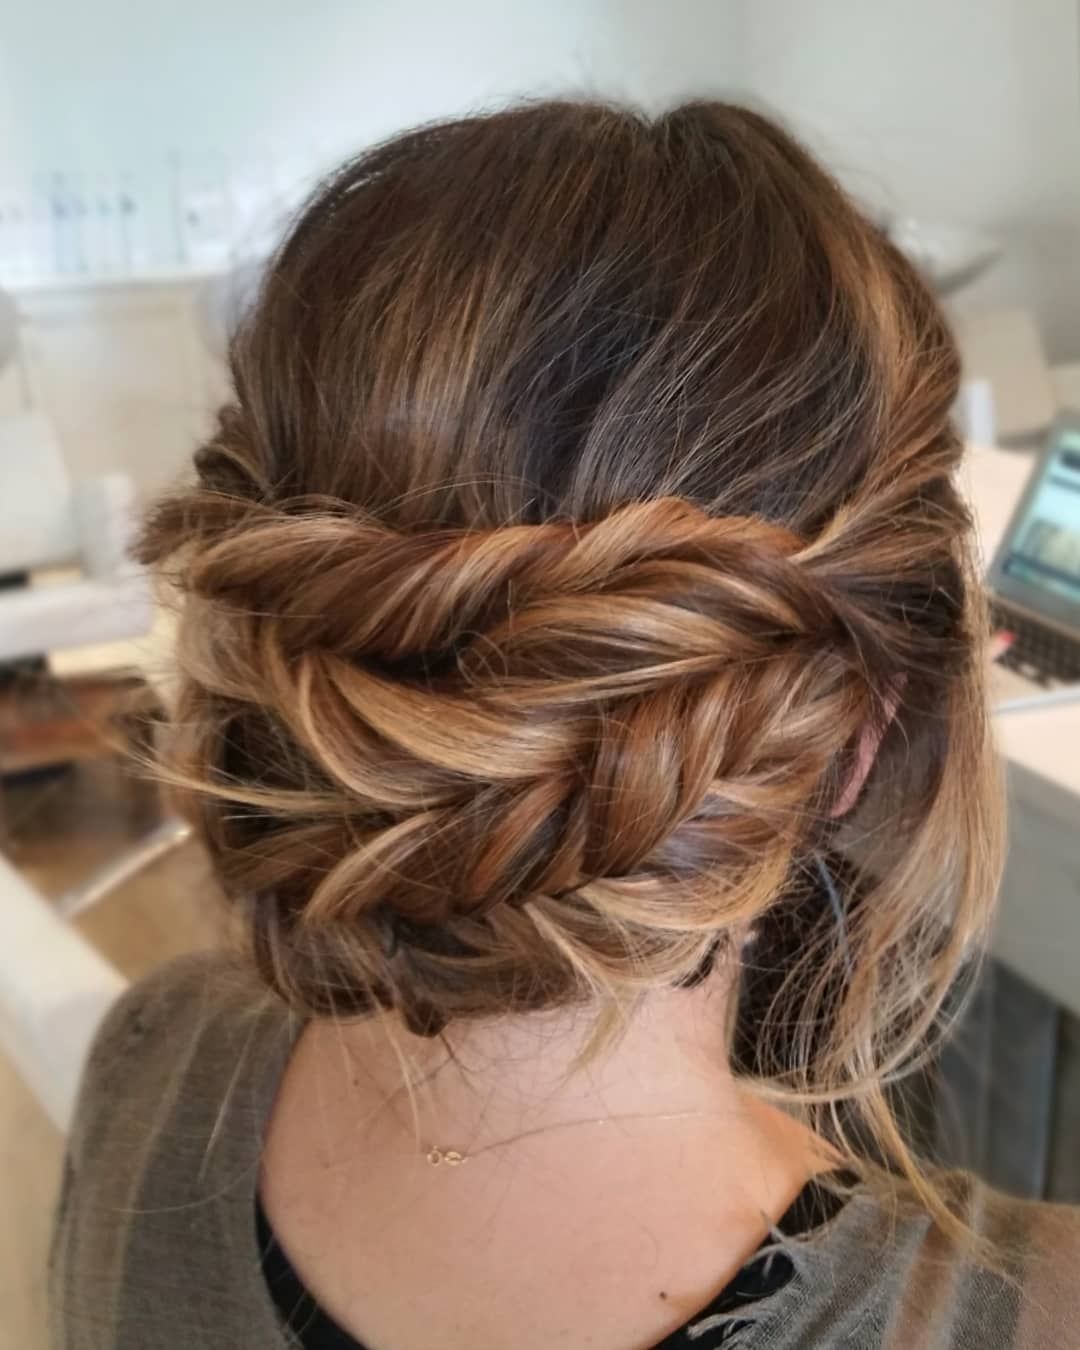 Braided Wedding Hair: Beautiful Whimsical Braided Updo